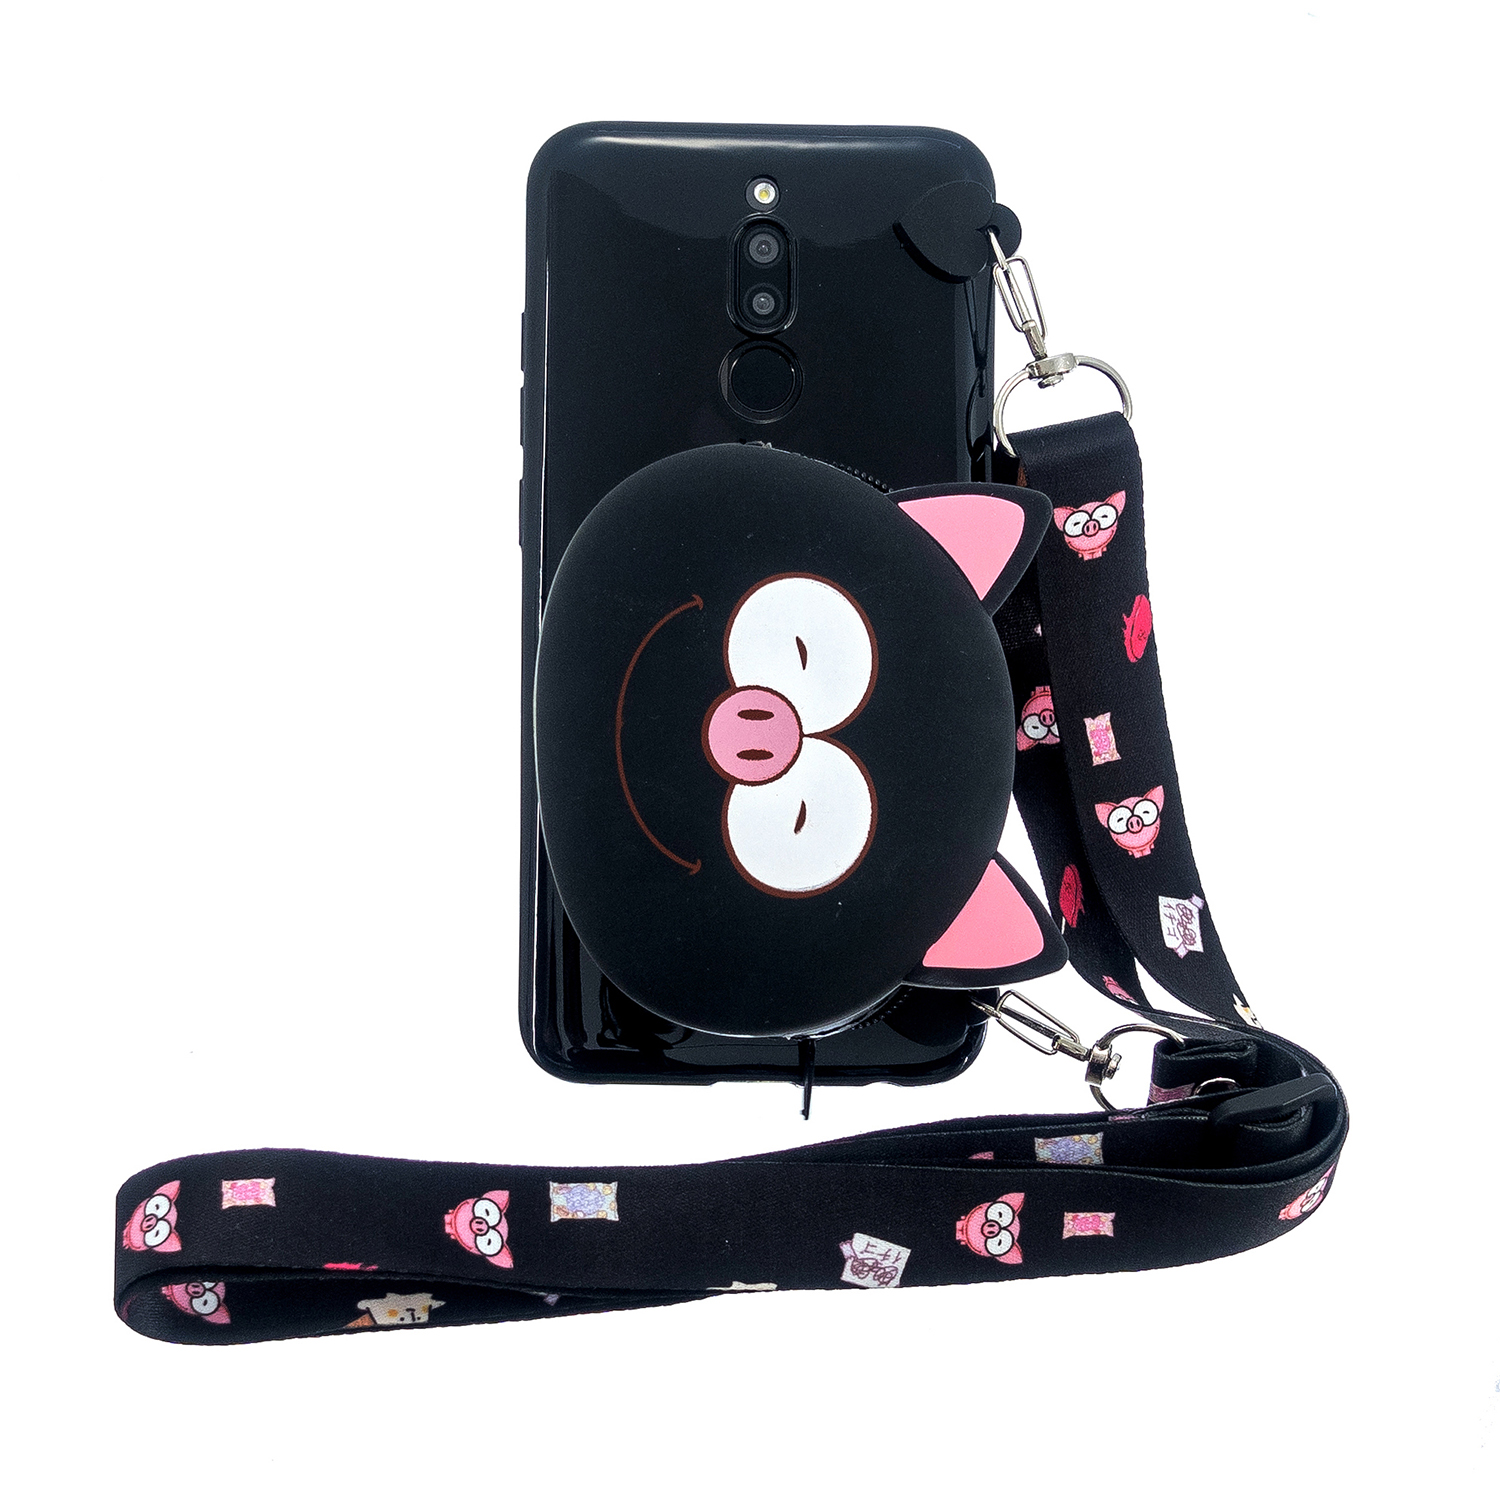 For Redmi 8/Redmi 8A Case Mobile Phone Shell Shockproof Cellphone TPU Cover with Cartoon Cat Pig Panda Coin Purse Lovely Shoulder Starp  Black